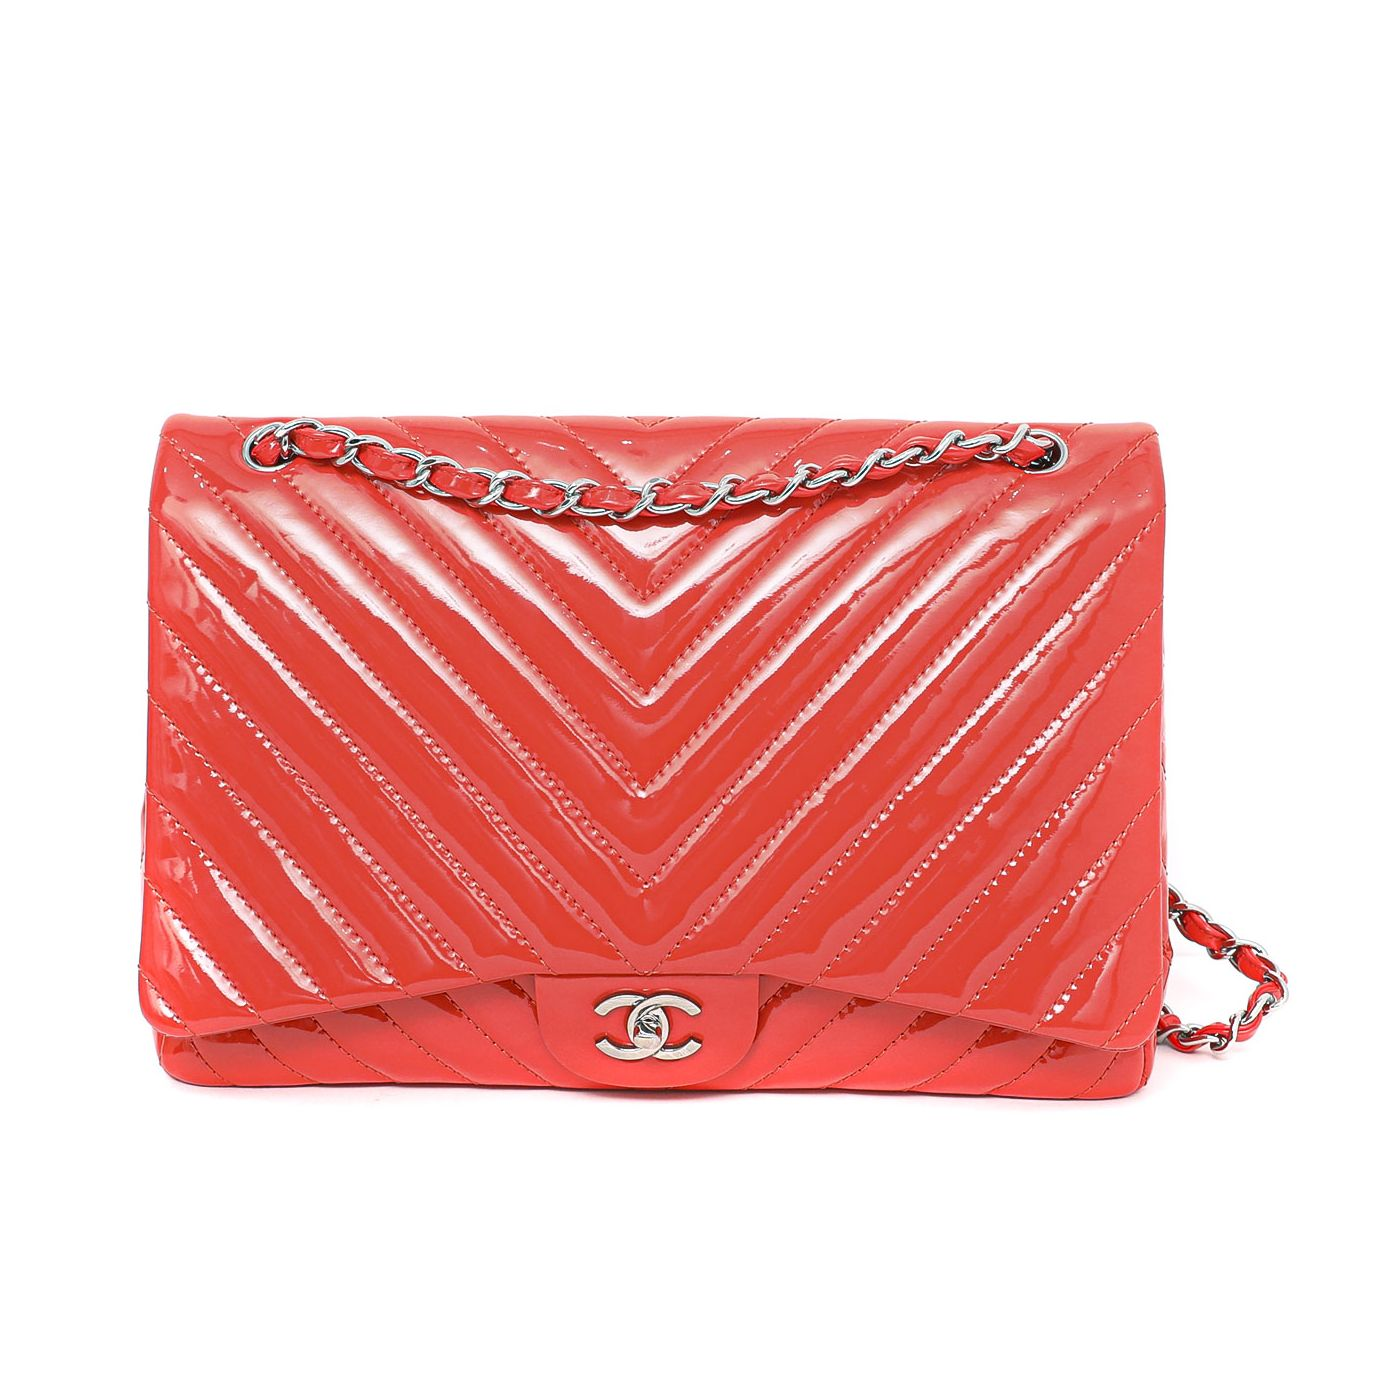 Chanel Red Maxi Single Flap Bag